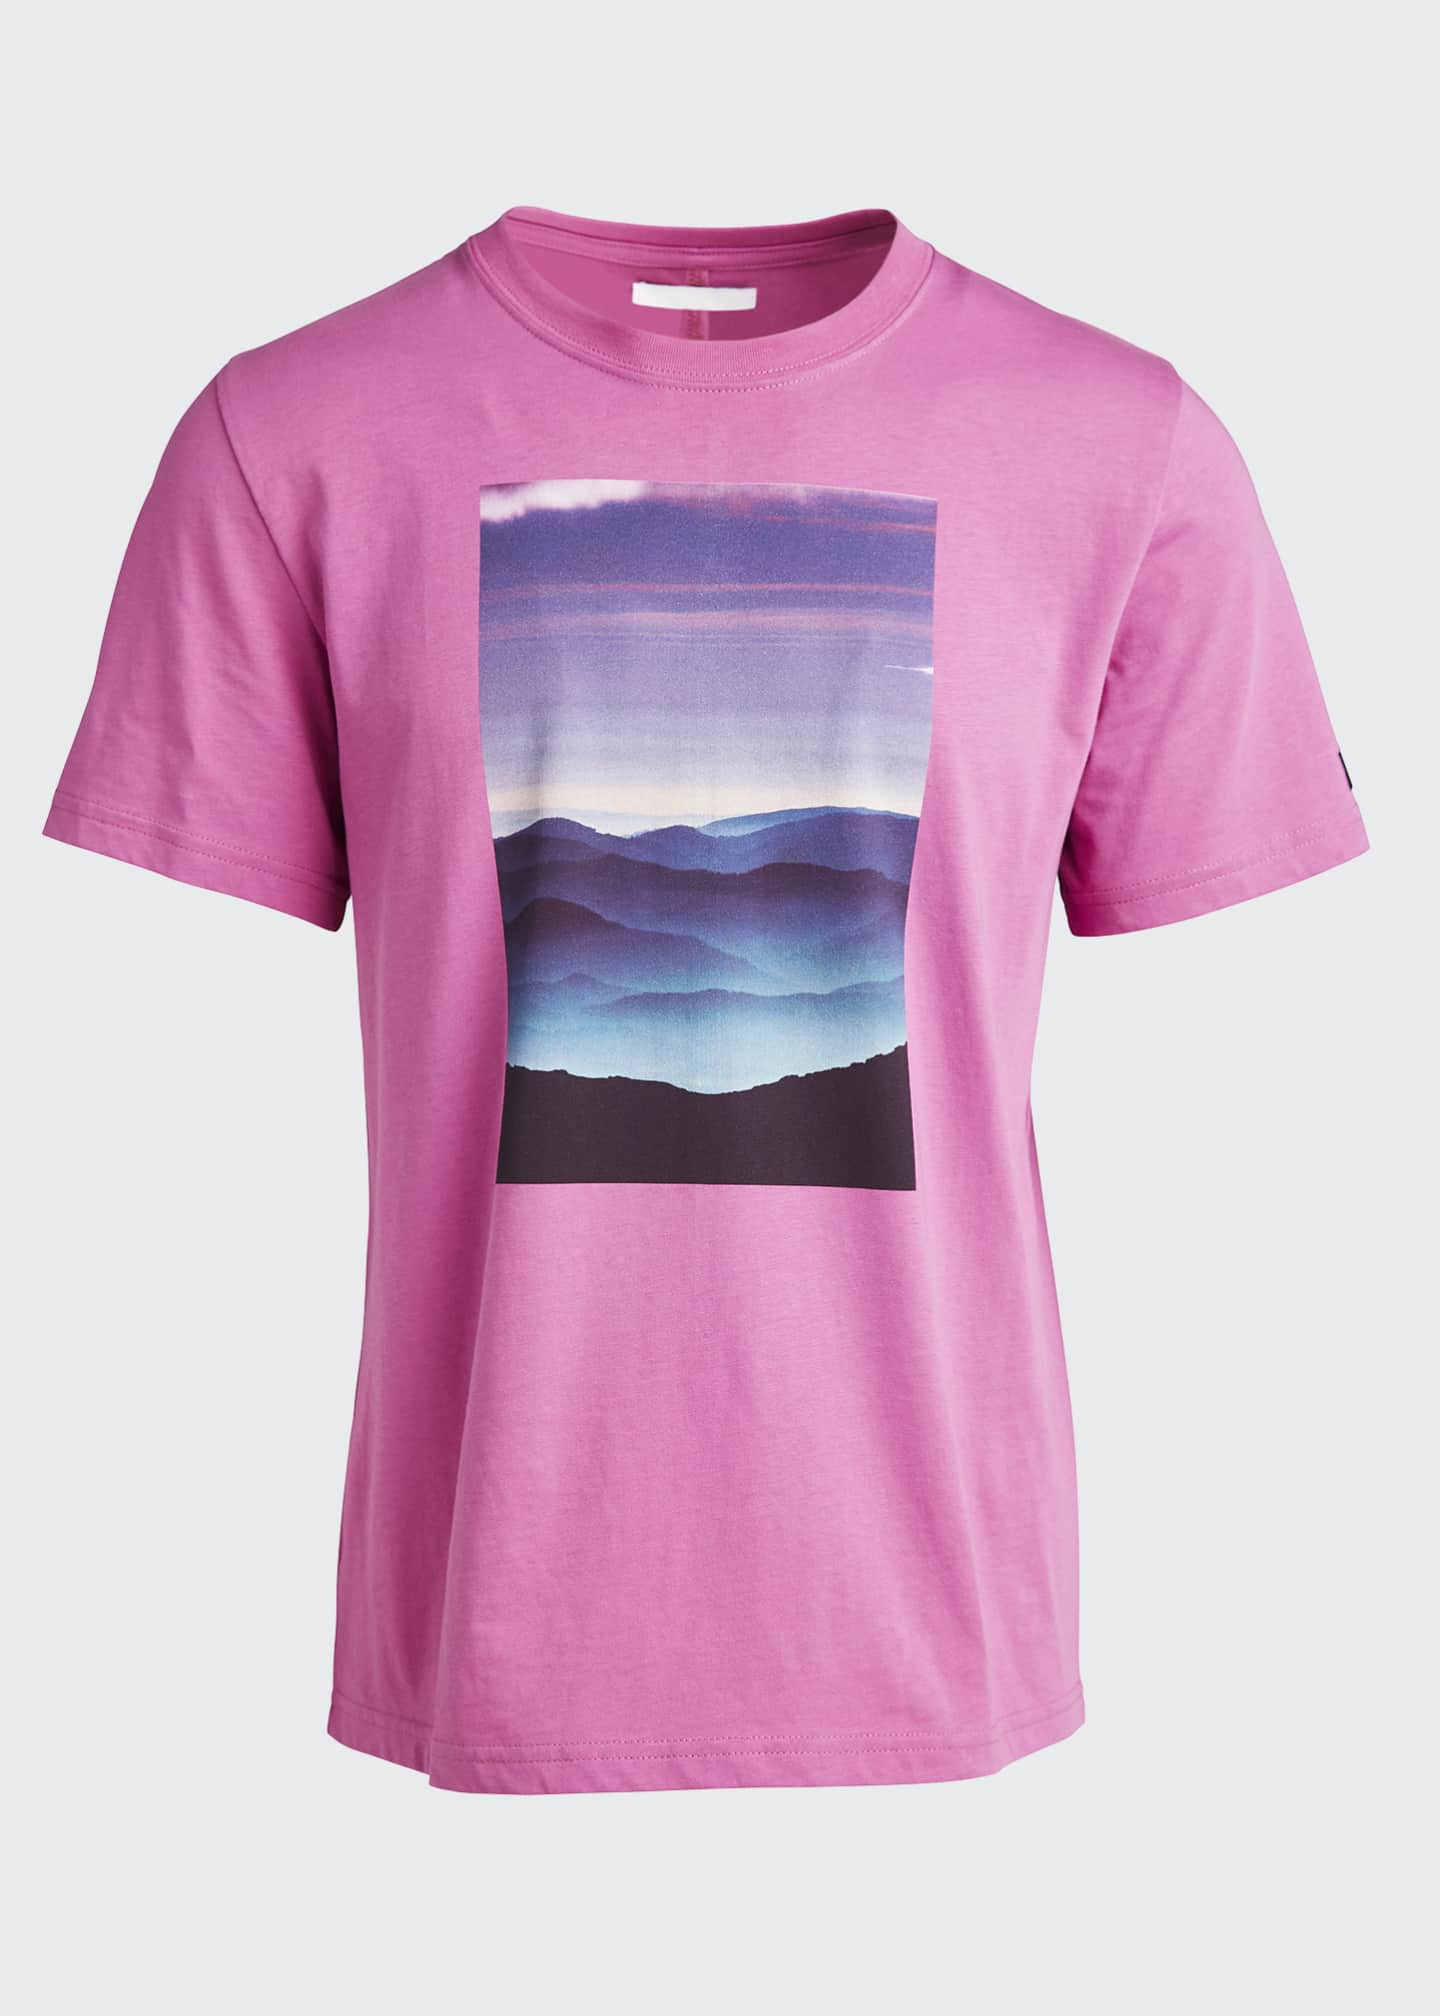 Image 5 of 5: Men's Tatra Landscape Graphic T-Shirt